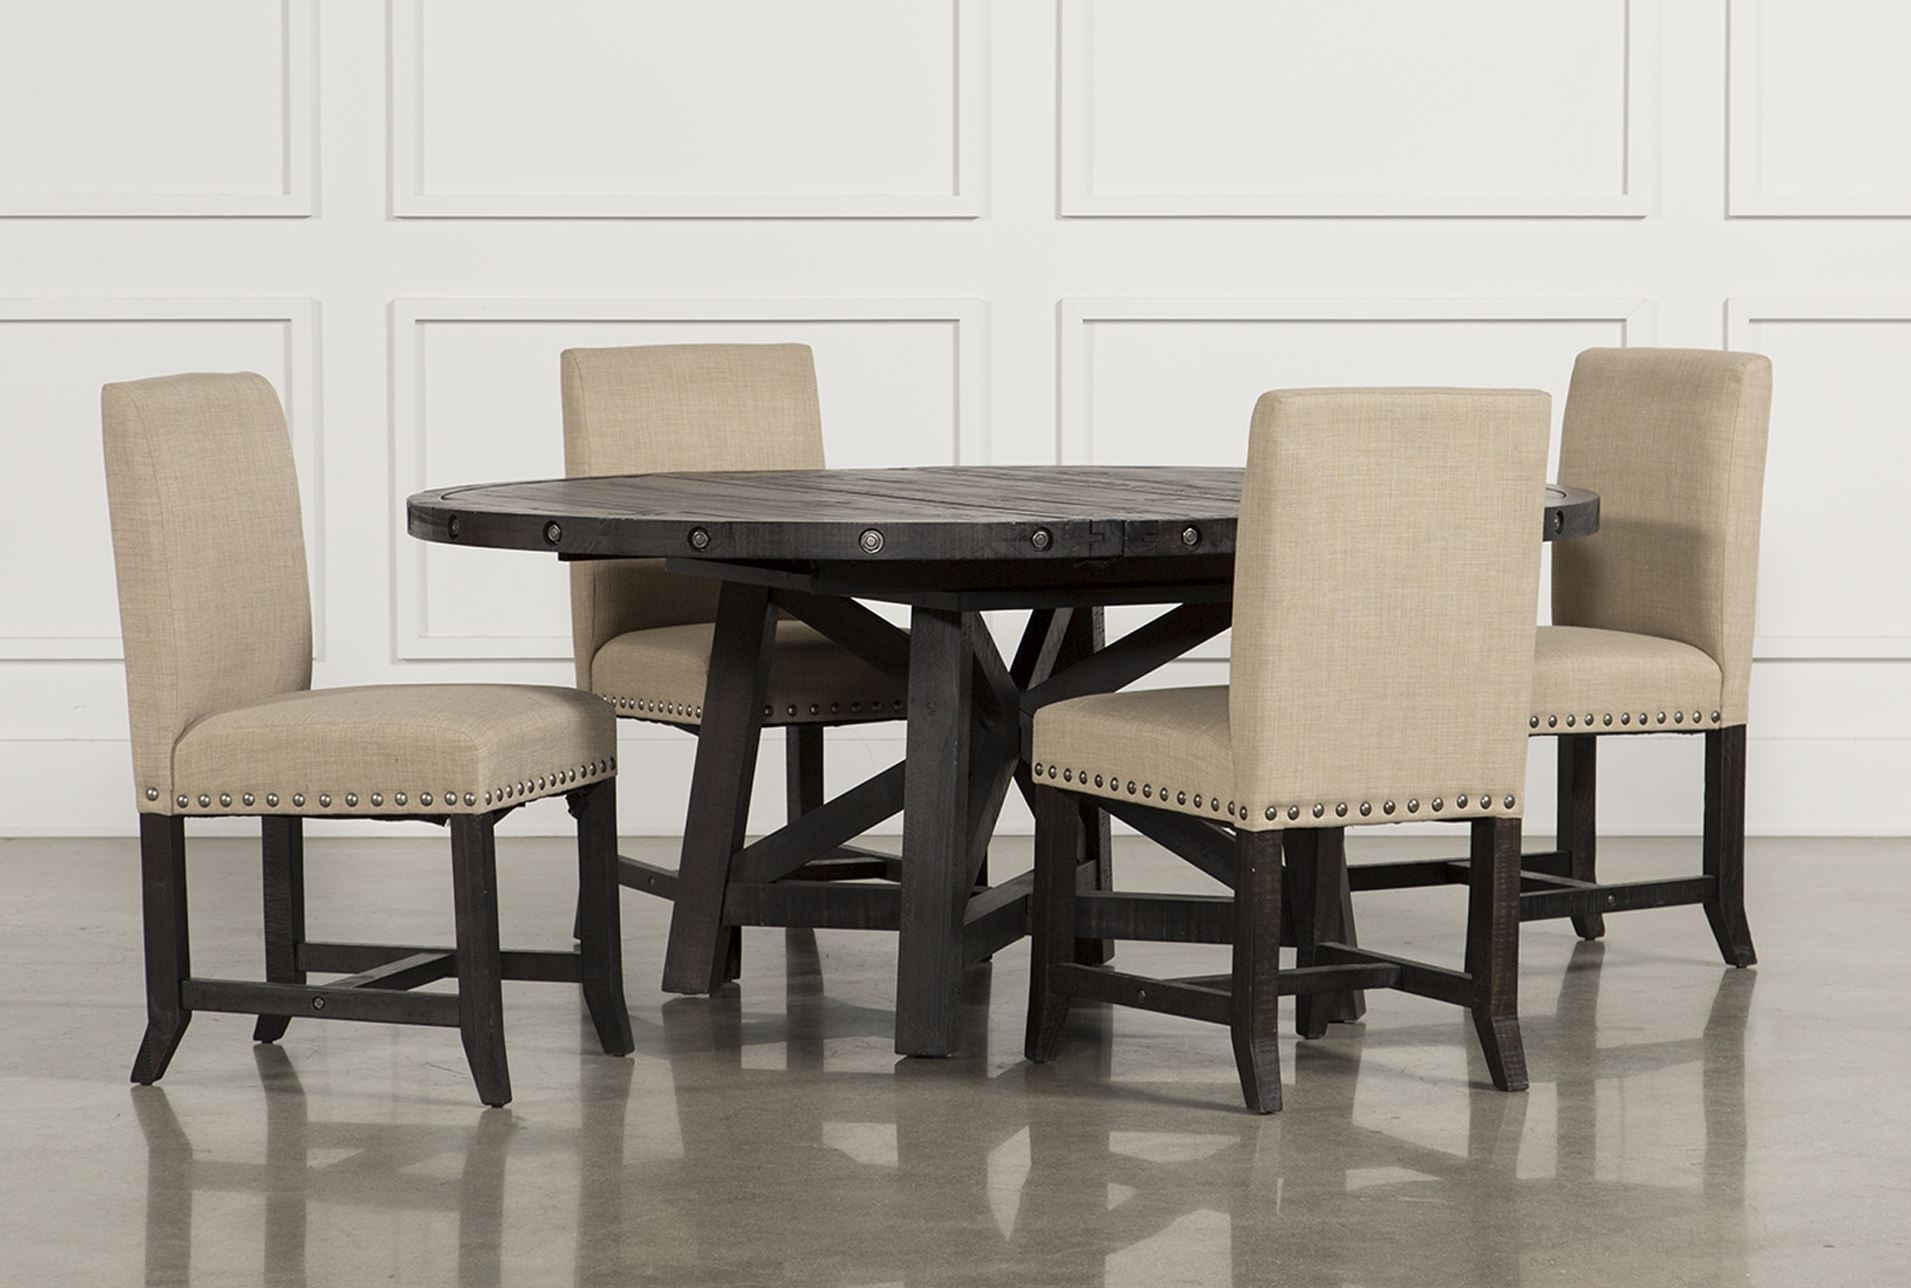 Dining Tables. Glamorous Living Spaces Dining Table: Jaxon 5 Piece In Best And Newest Jaxon Round Extension Dining Tables (Photo 5 of 20)